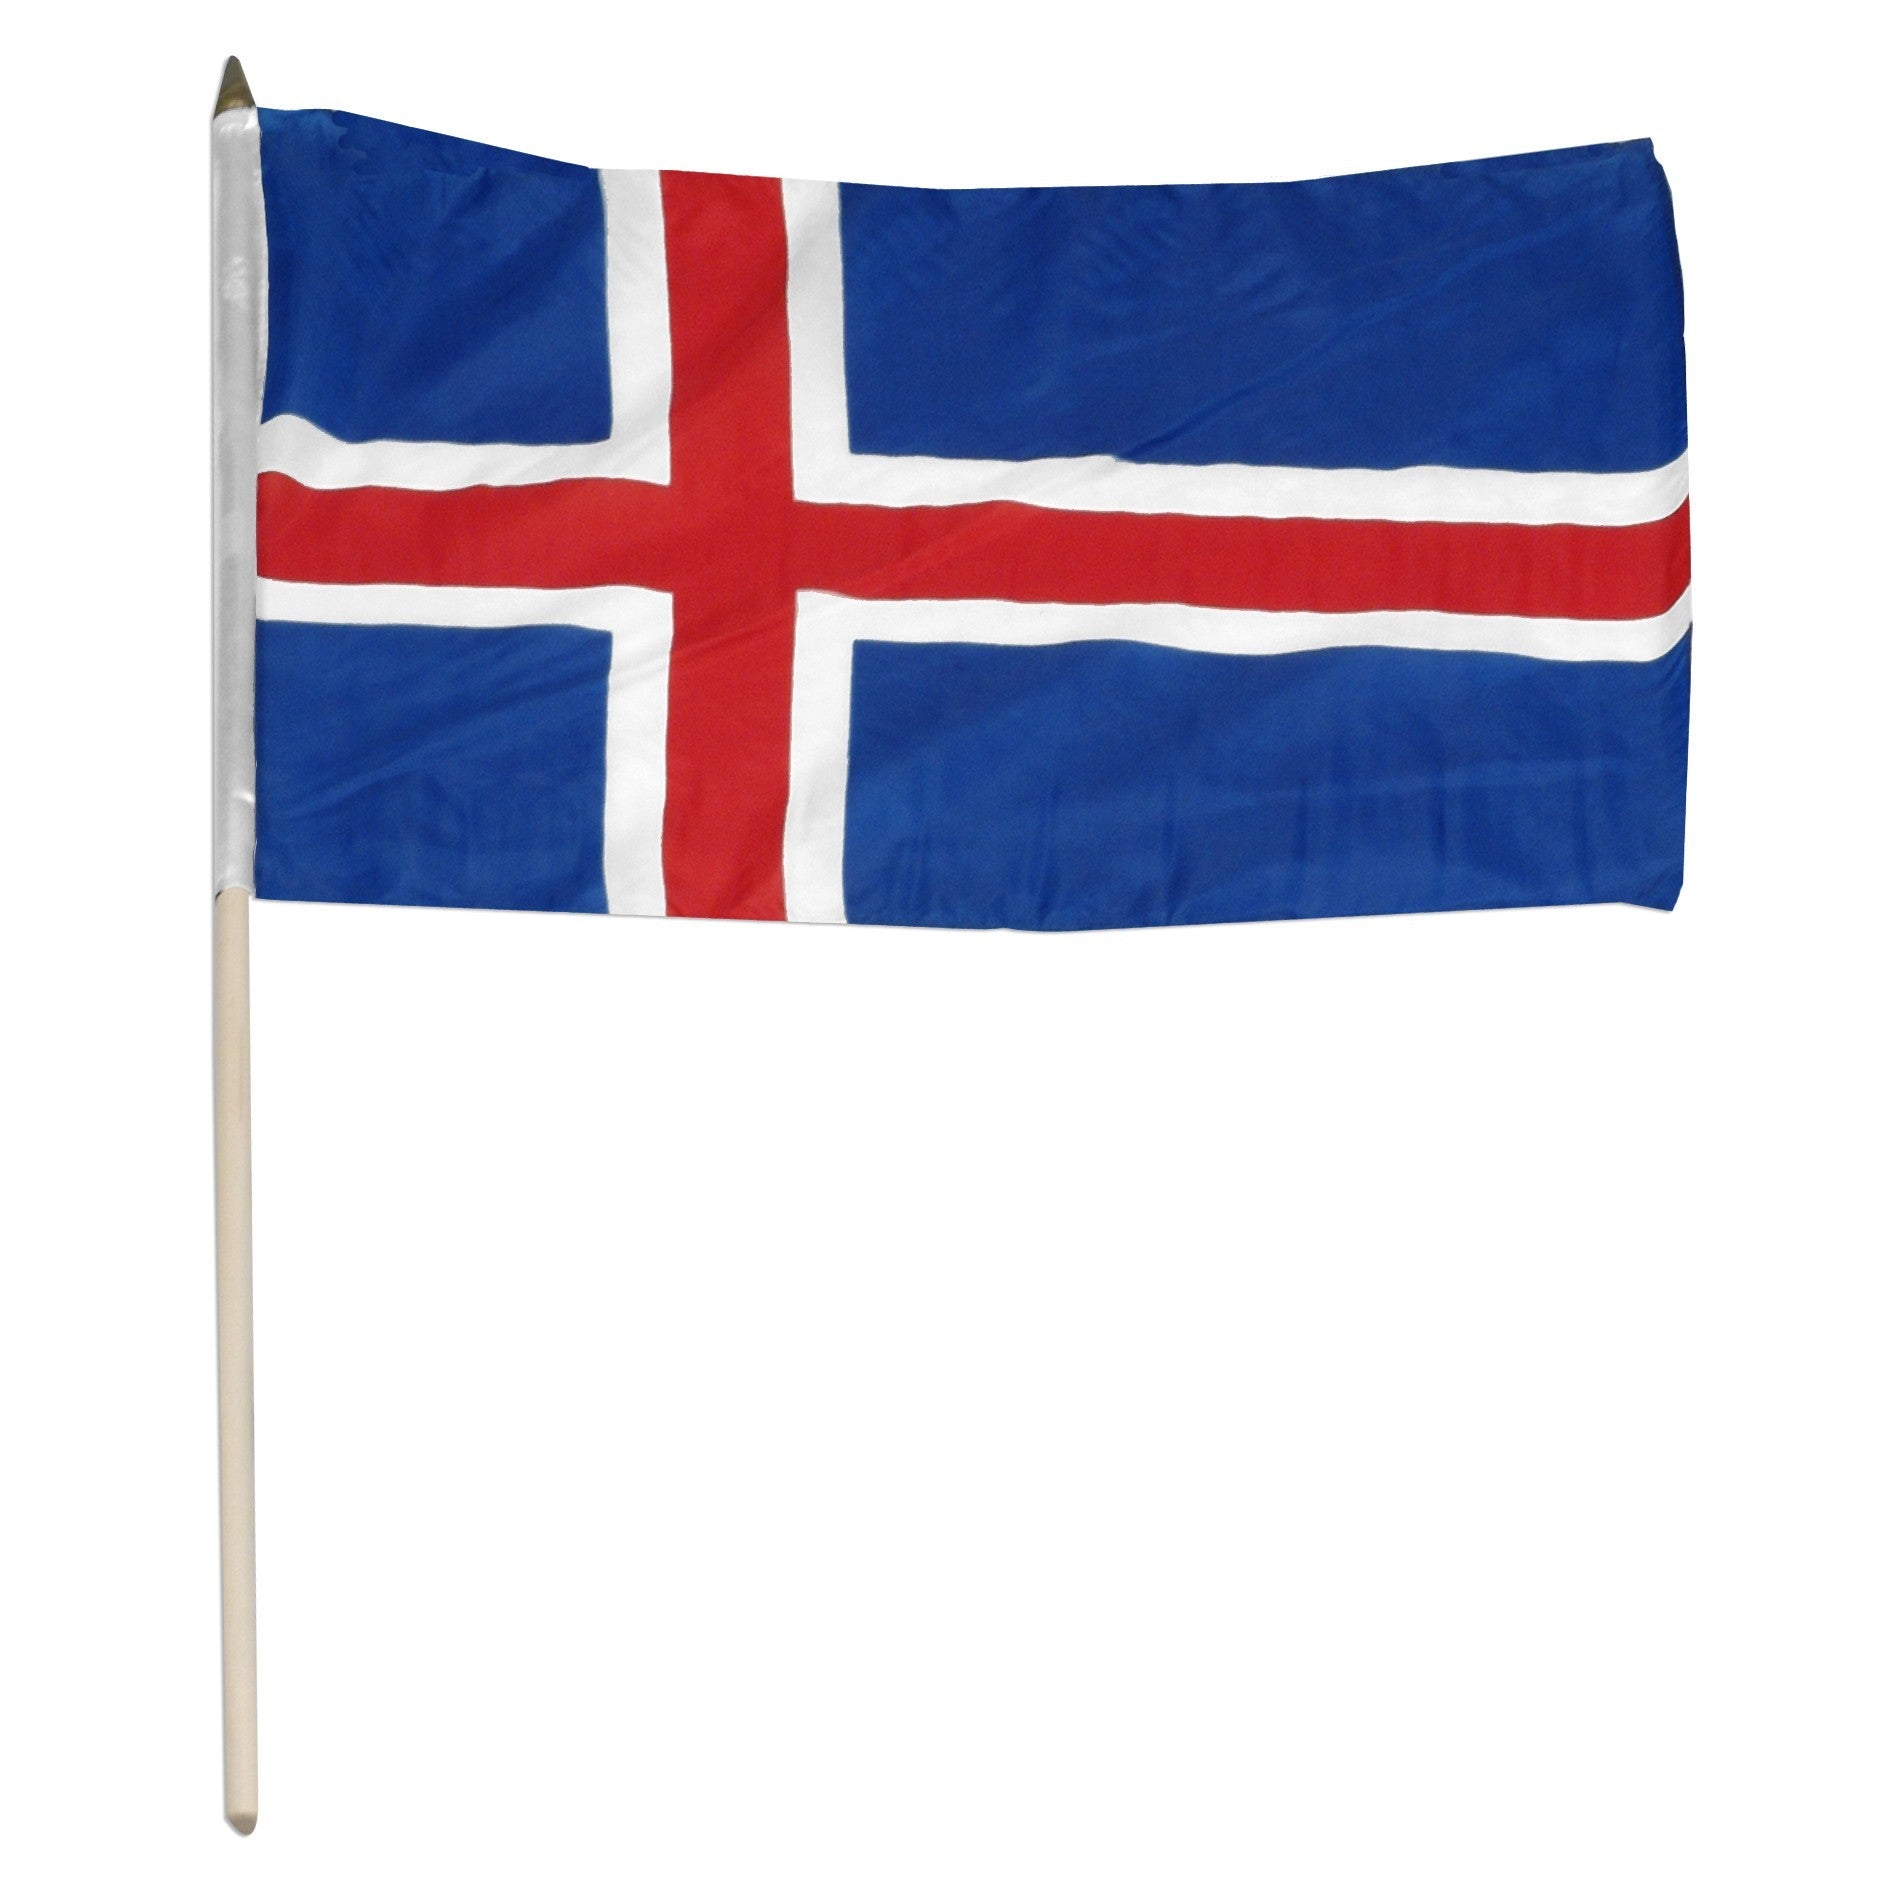 Iceland Flags For Sale by 1-800 Flags 1800 Flags